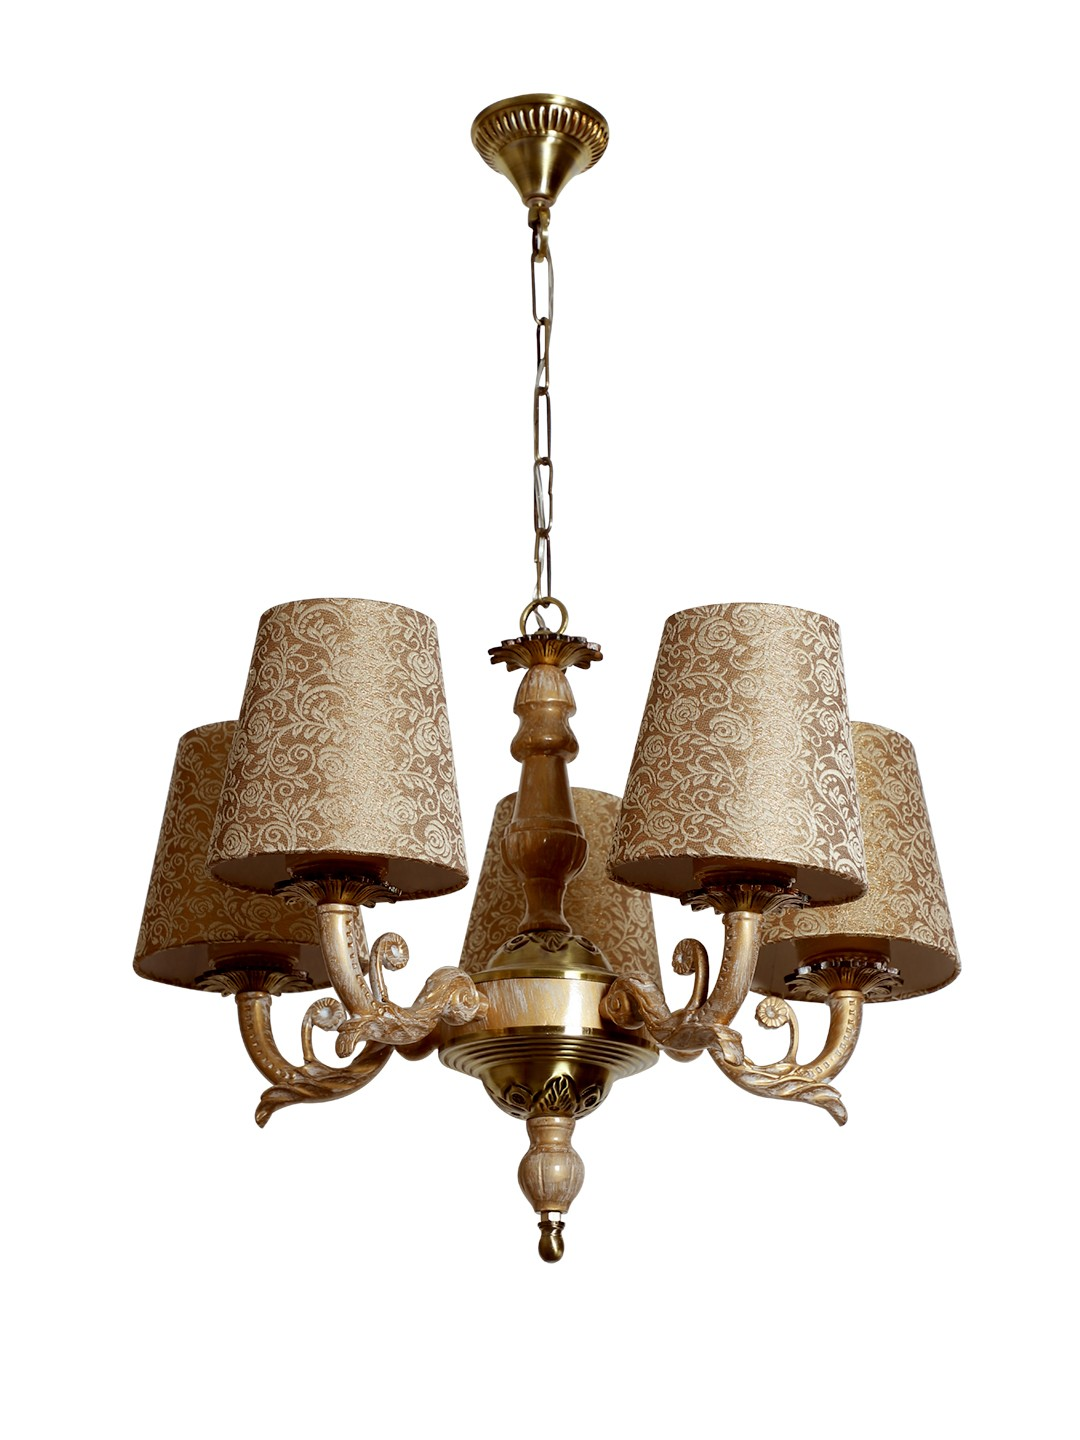 Golden White 5 Light Chandelier in Brocade Shades